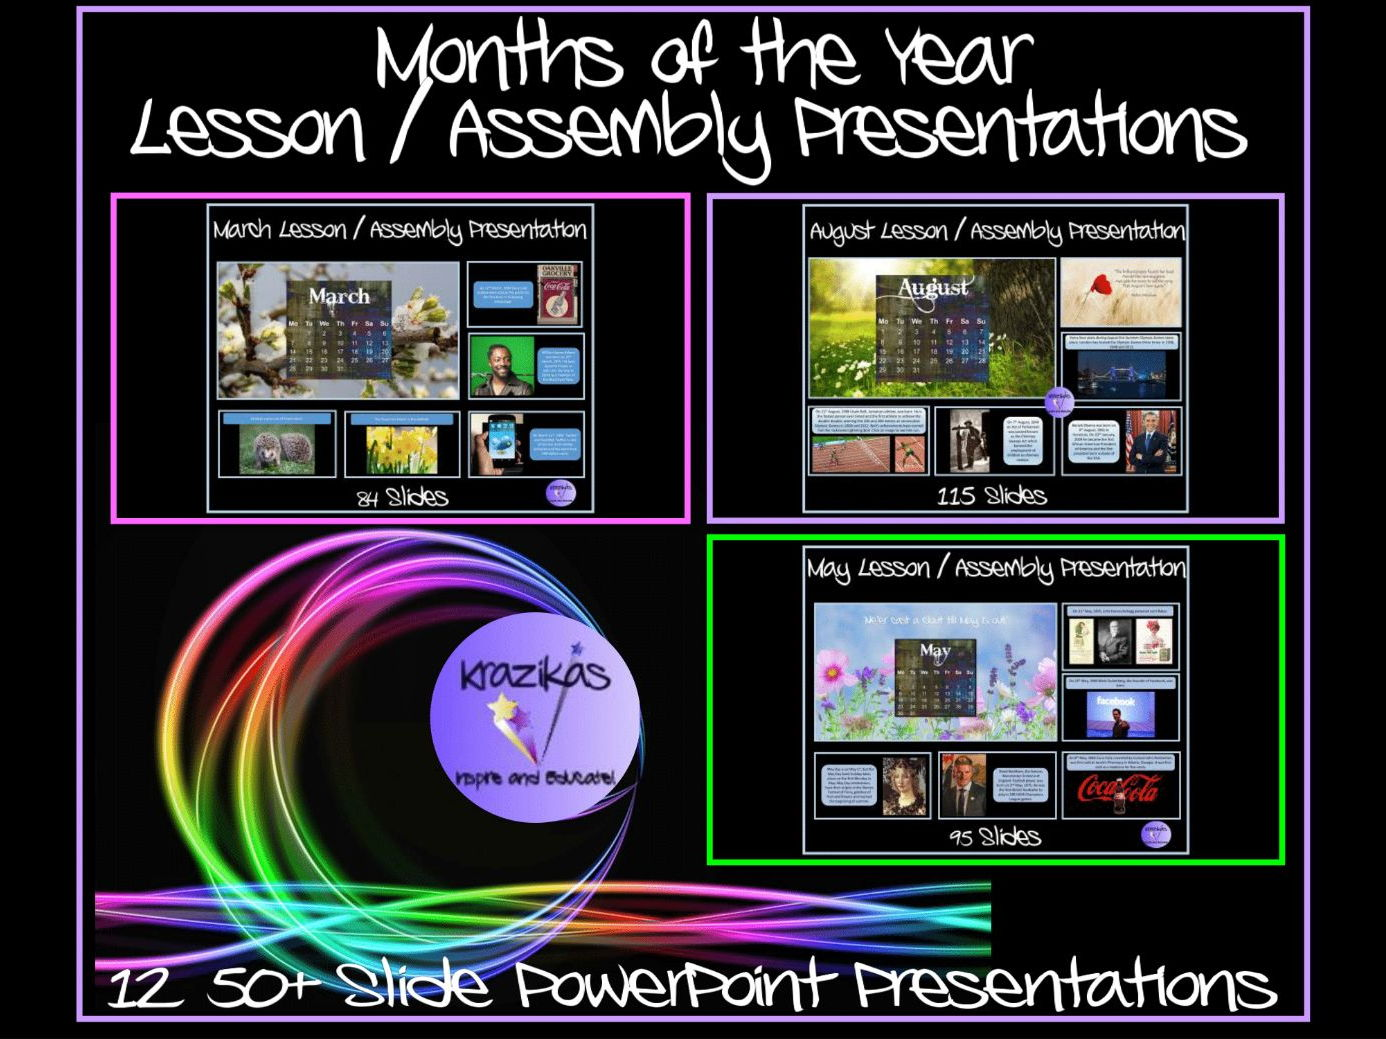 Months of the Year Lesson / Assemblies Bundle - Twelve 50+ Slide Lesson / Assembly PowerPoint Presentations